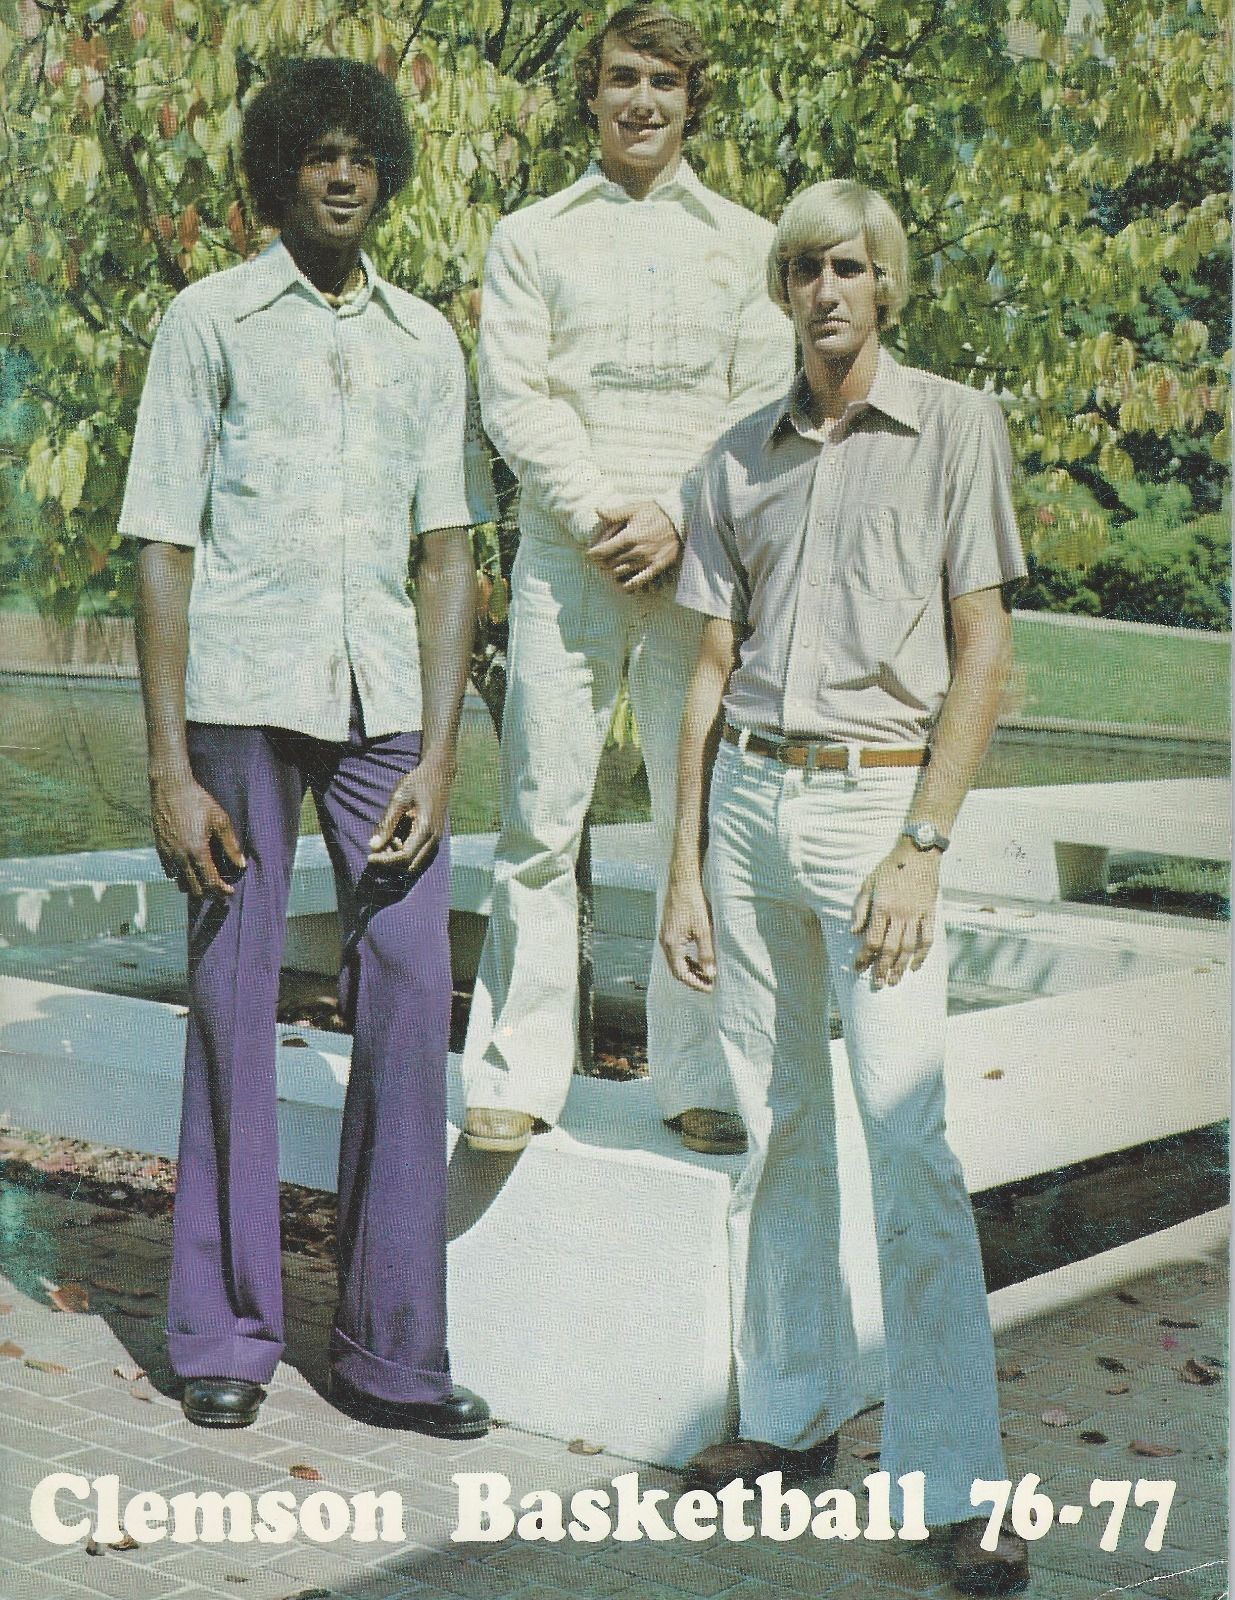 """1976 77 Clemson BB Media Guide Front Cover Picture of """"Tree"""